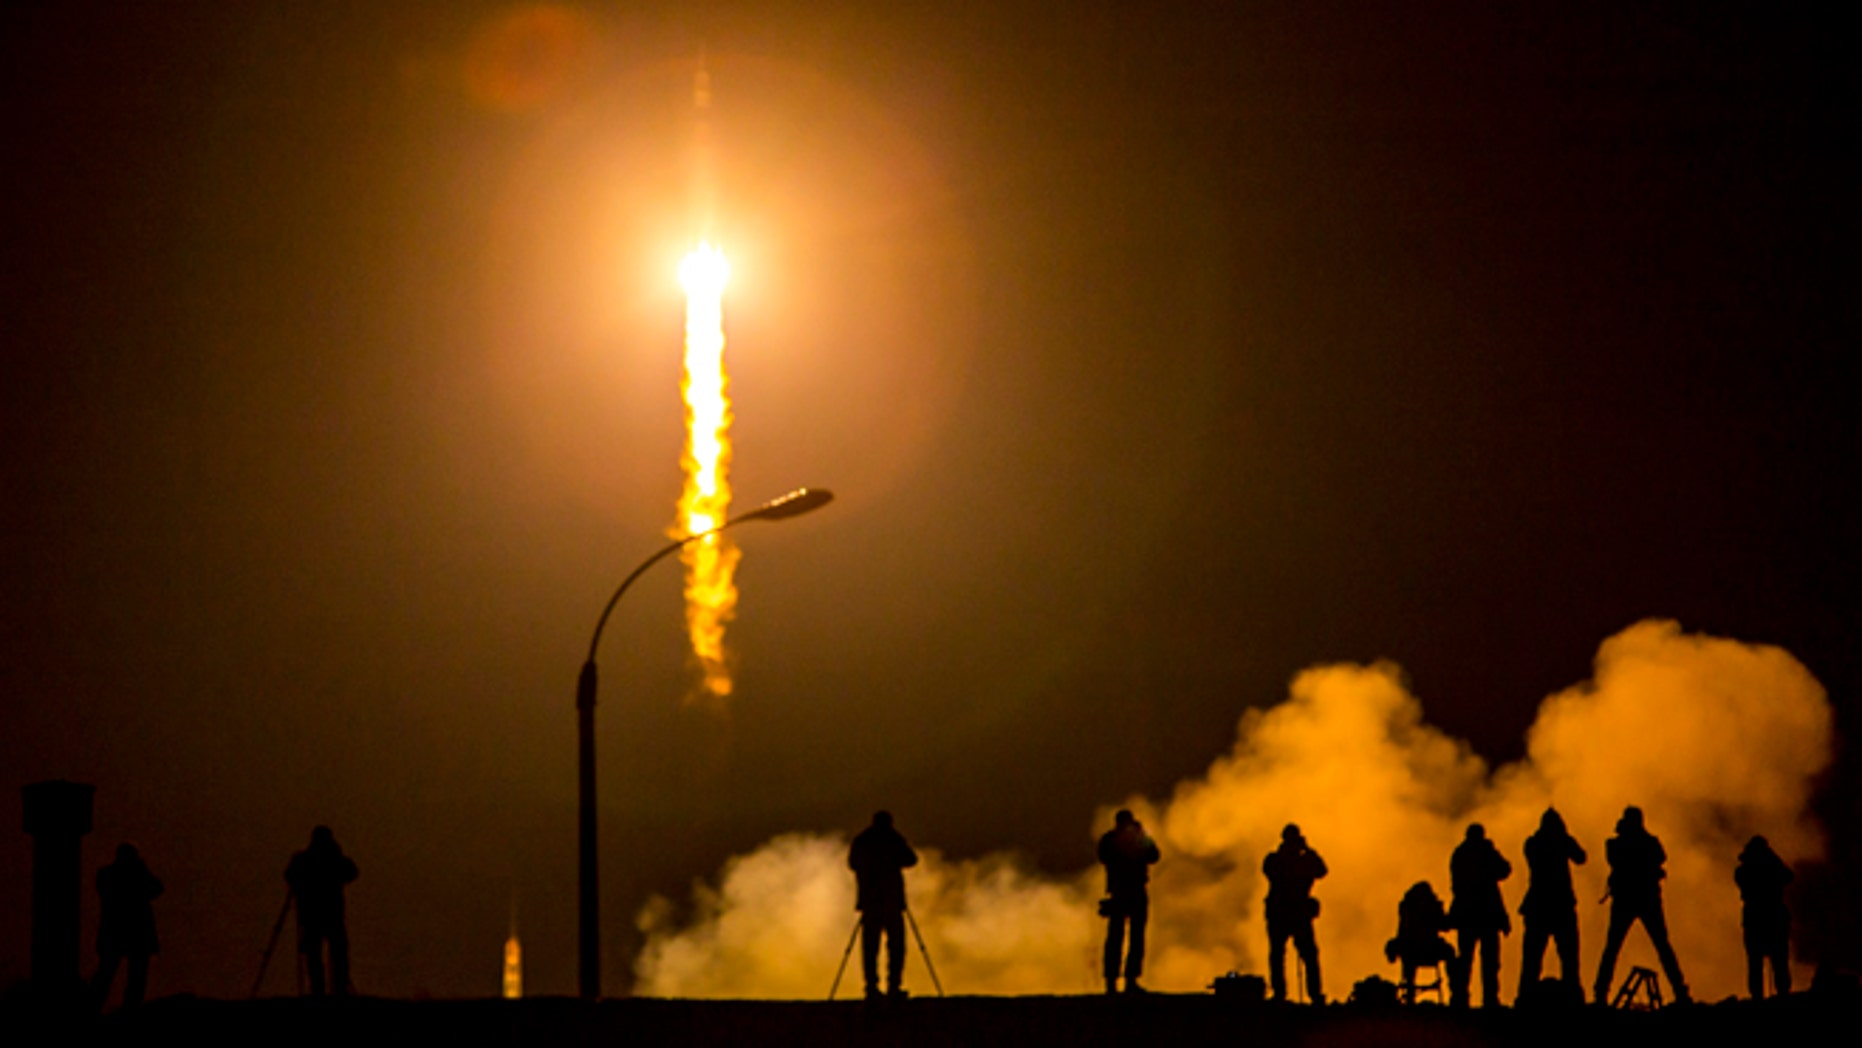 BAIKONUR, KAZAKHSTAN - MARCH 28: In this handout provided by NASA, The Soyuz TMA-16M spacecraft is seen as it launches to the International Space Station with Expedition 43 NASA Astronaut Scott Kelly, Russian Cosmonauts Mikhail Kornienko, and Gennady Padalka of the Russian Federal Space Agency (Roscosmos) onboard Saturday, March 28, 2015, Kazakh time (March 27 Eastern time) from the Baikonur Cosmodrome in Kazakhstan. As the one-year crew, Kelly and Kornienko will return to Earth on Soyuz TMA-18M in March 2016.   (Photo by Bill Ingalls/NASA via Getty Images)